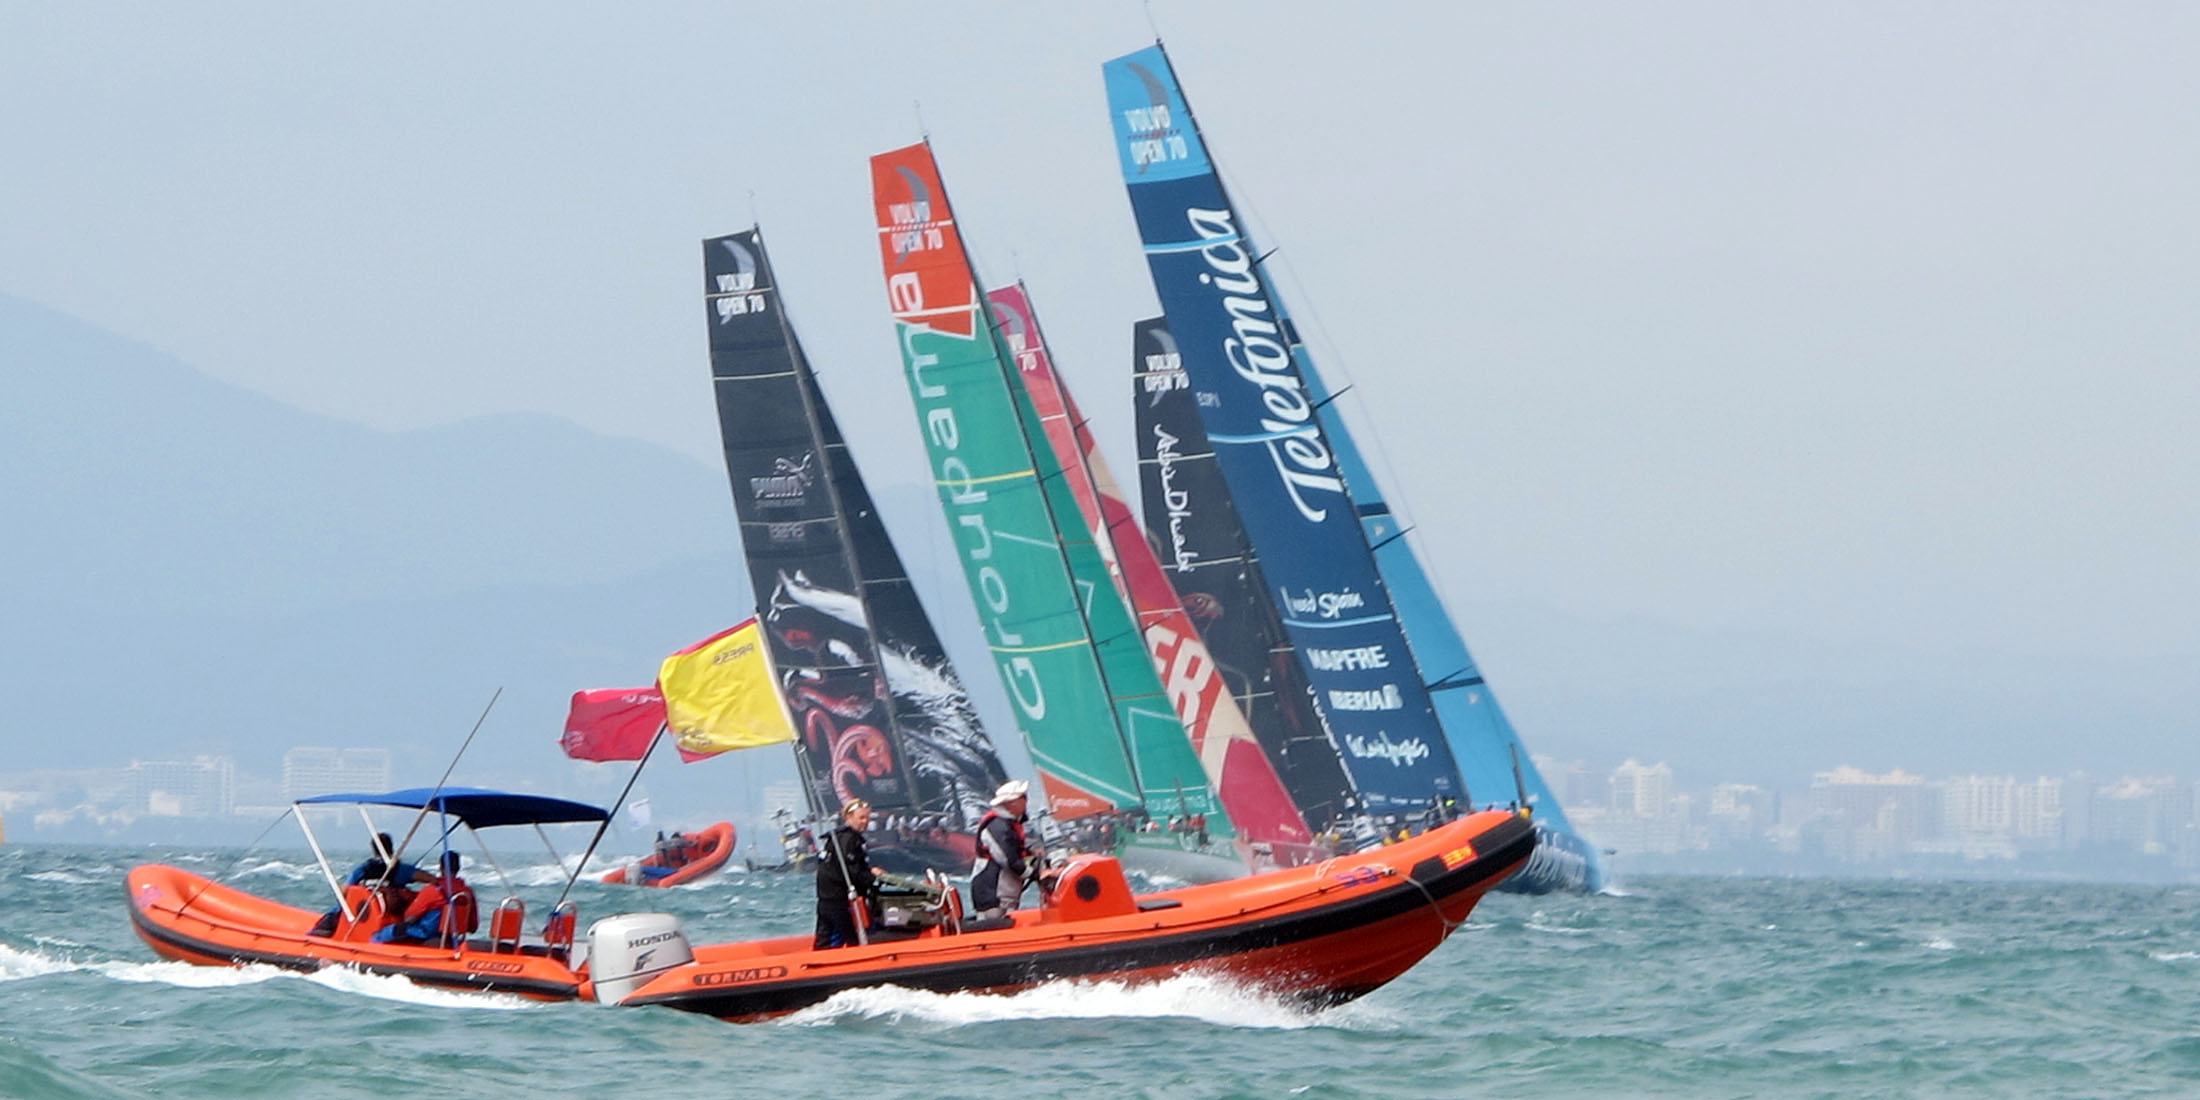 Tornado 6.4m high performance in orange sailing at Volvo Ocean Race